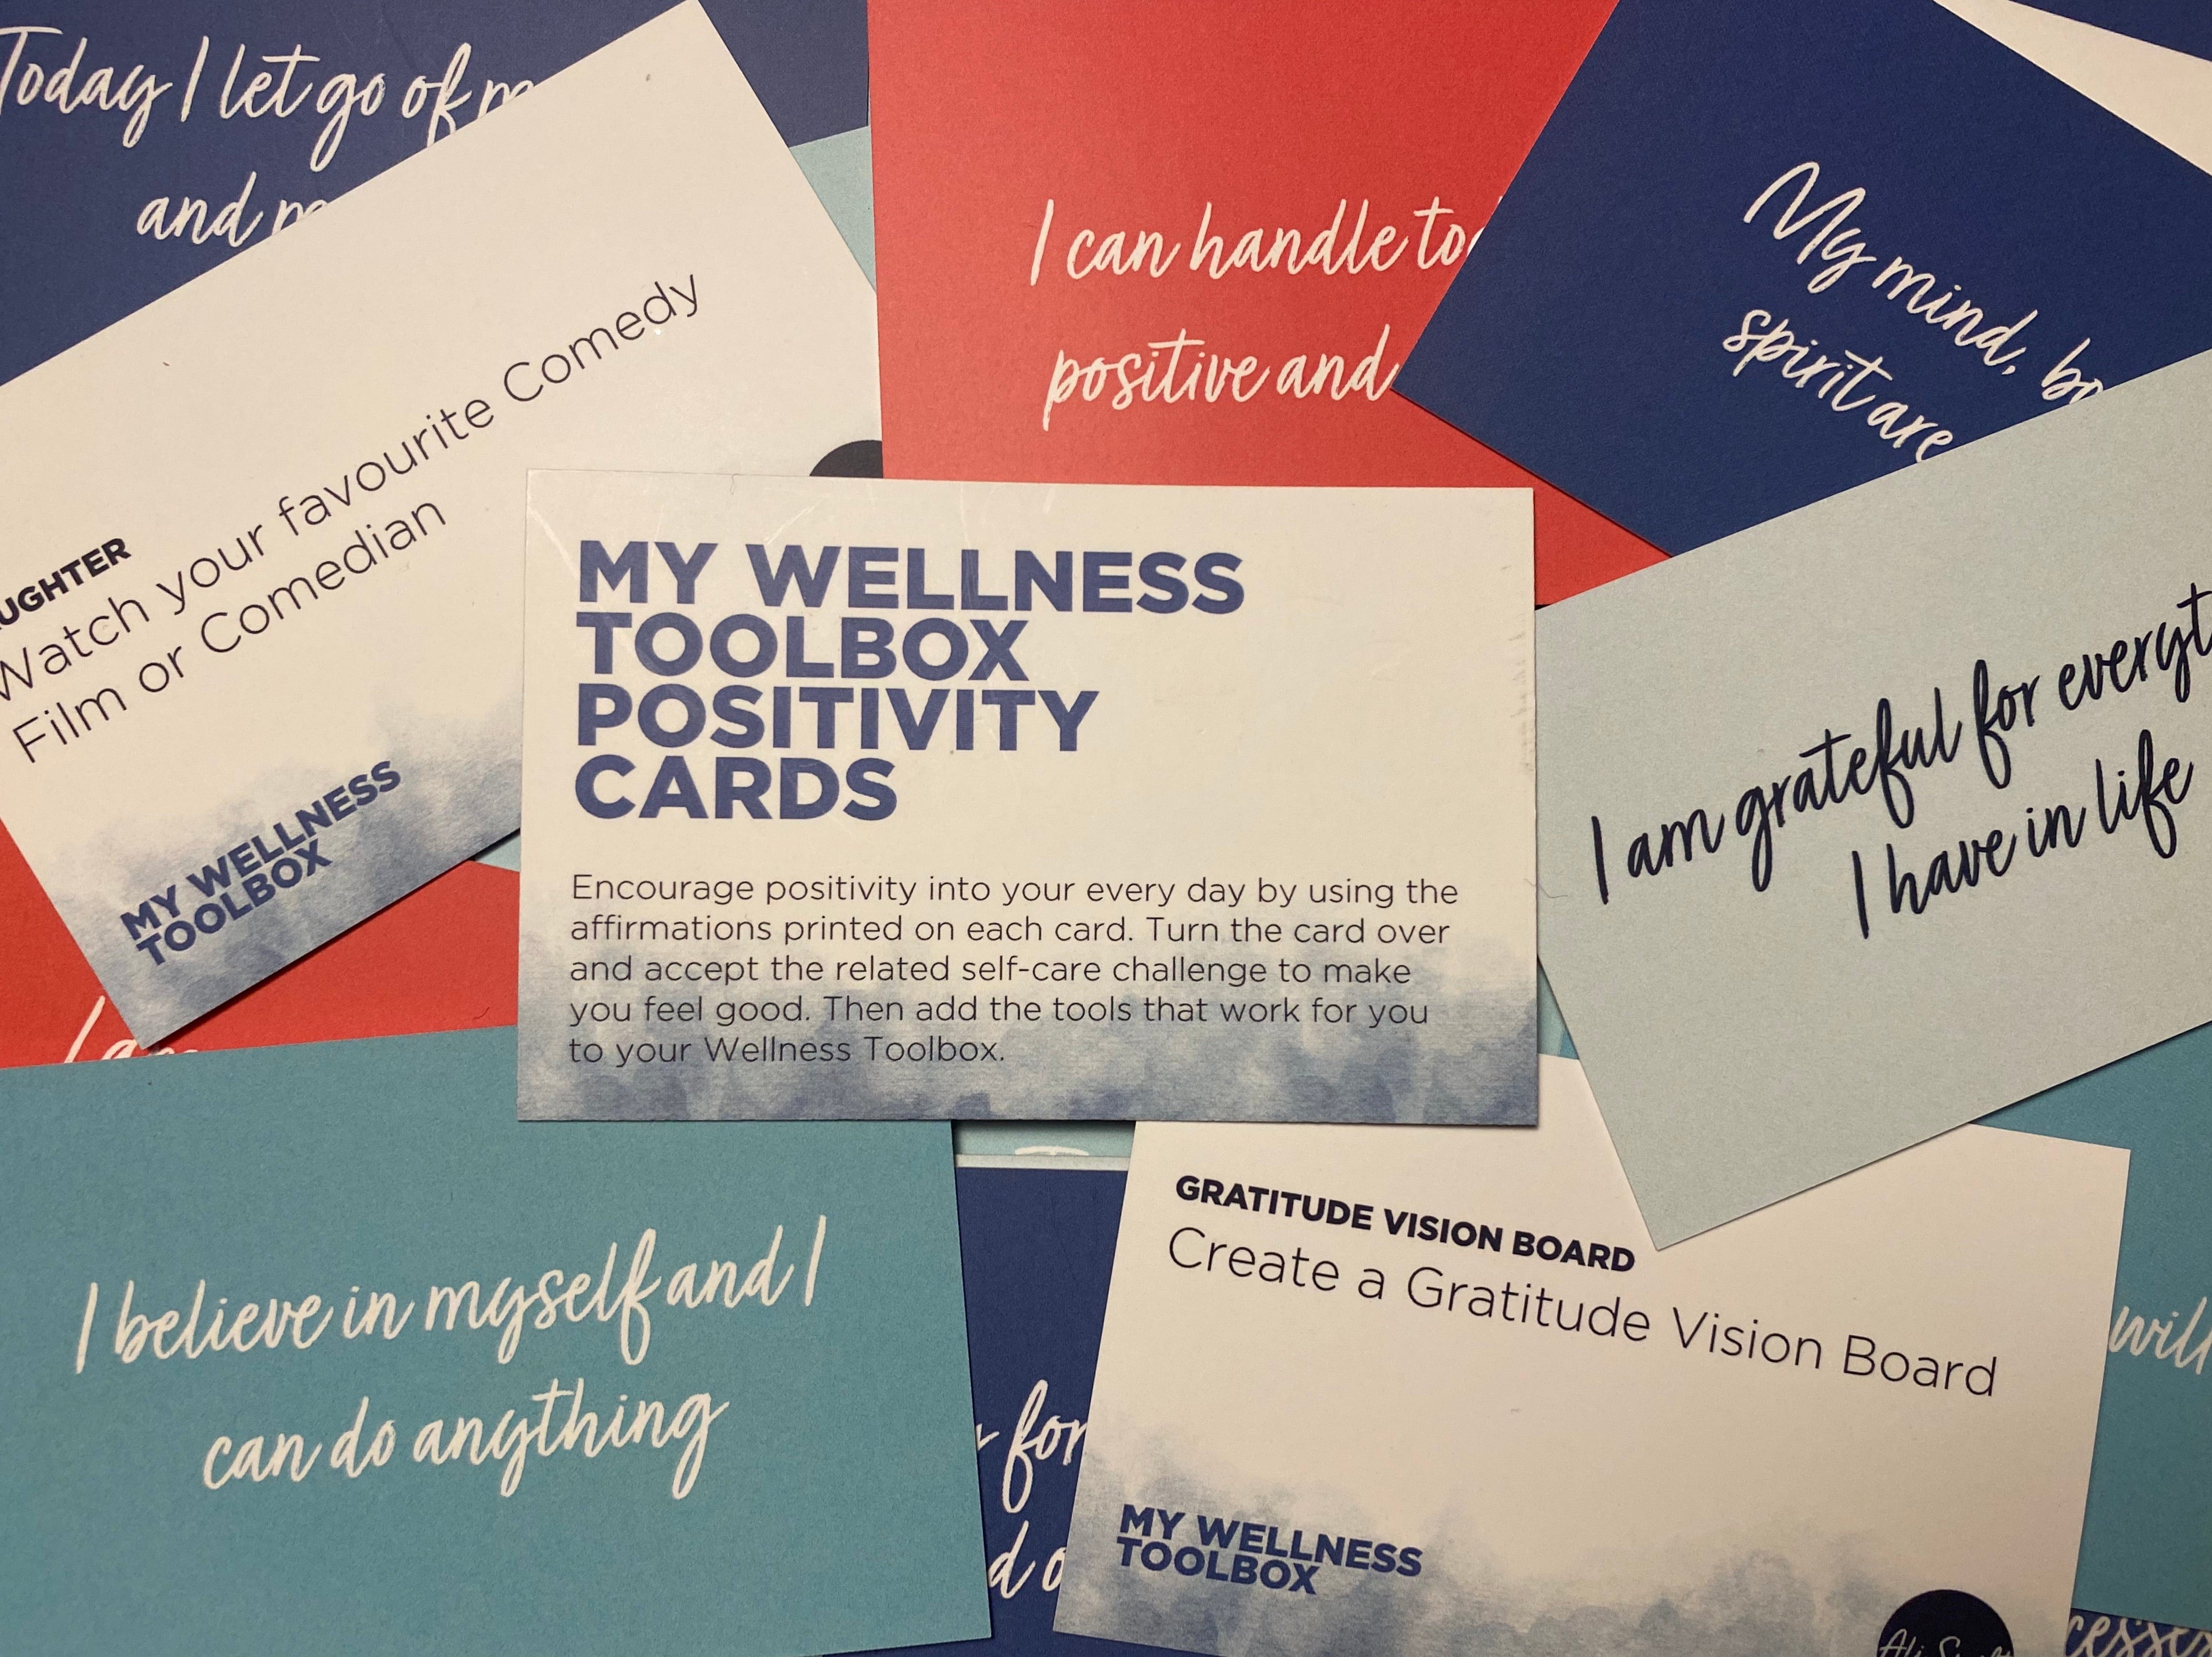 My Wellness Toolbox Paperback Book & Positivity Cards